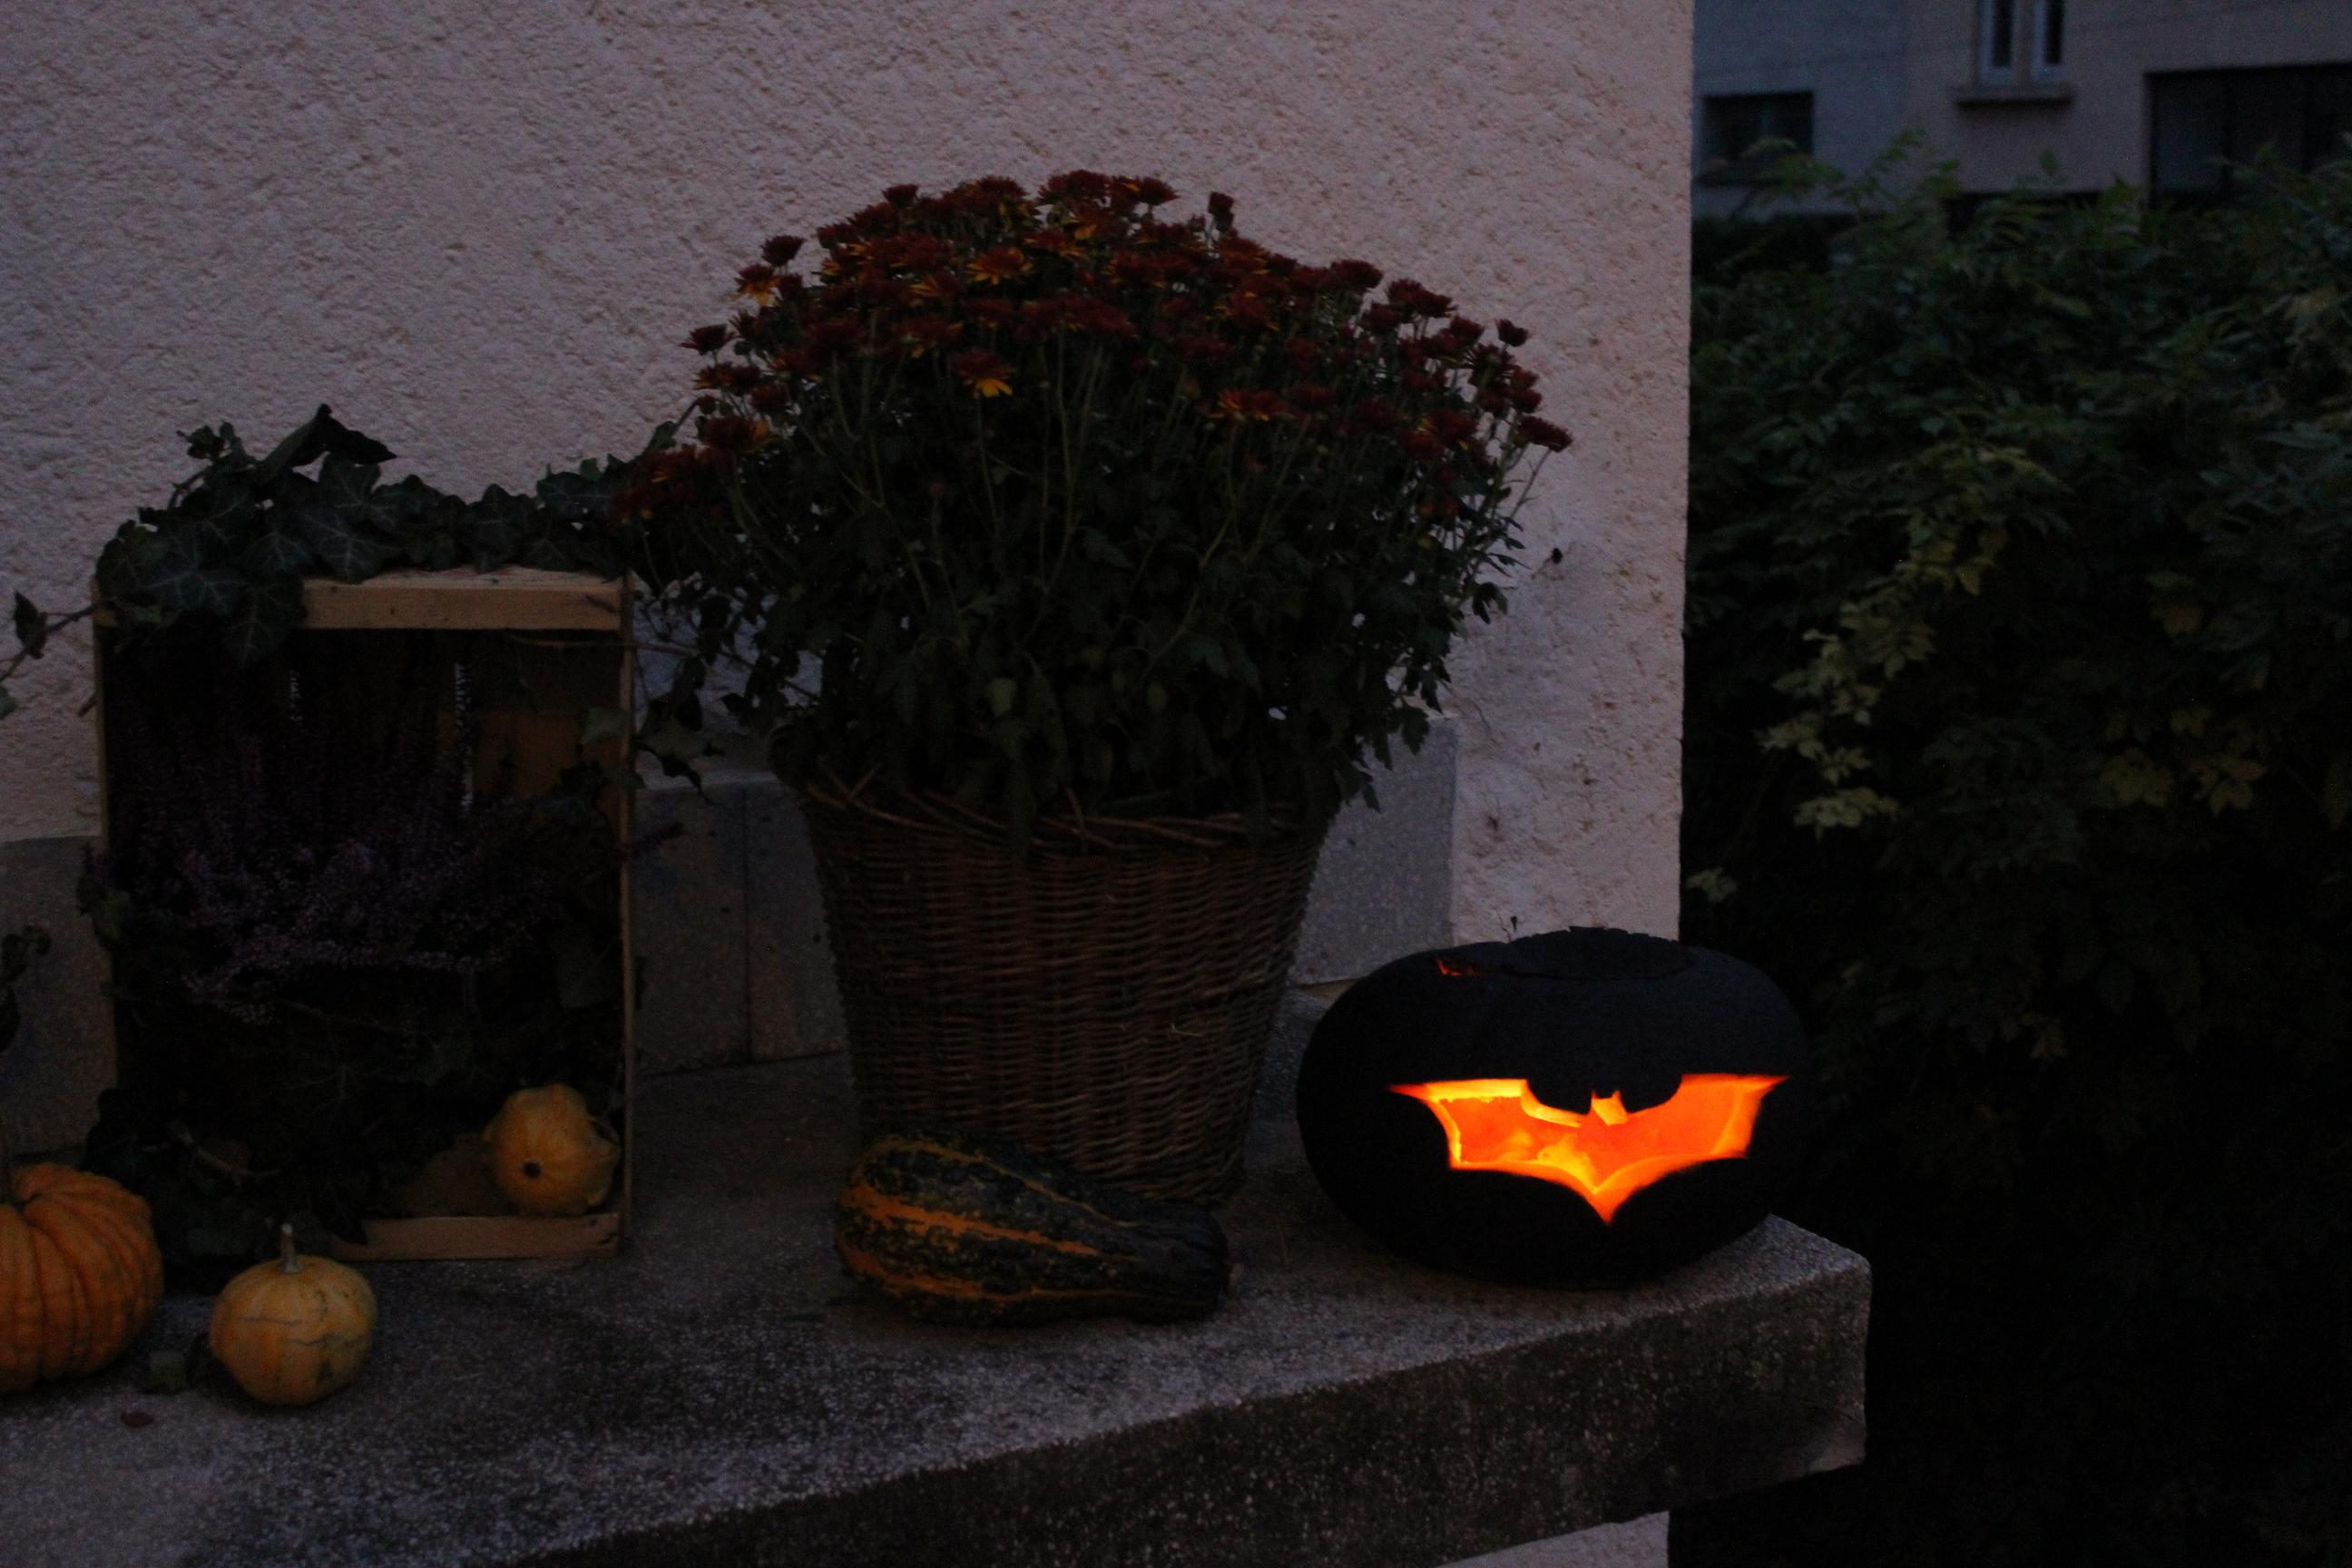 szmk_star_wars_batman_tok_pumpkin_22.JPG